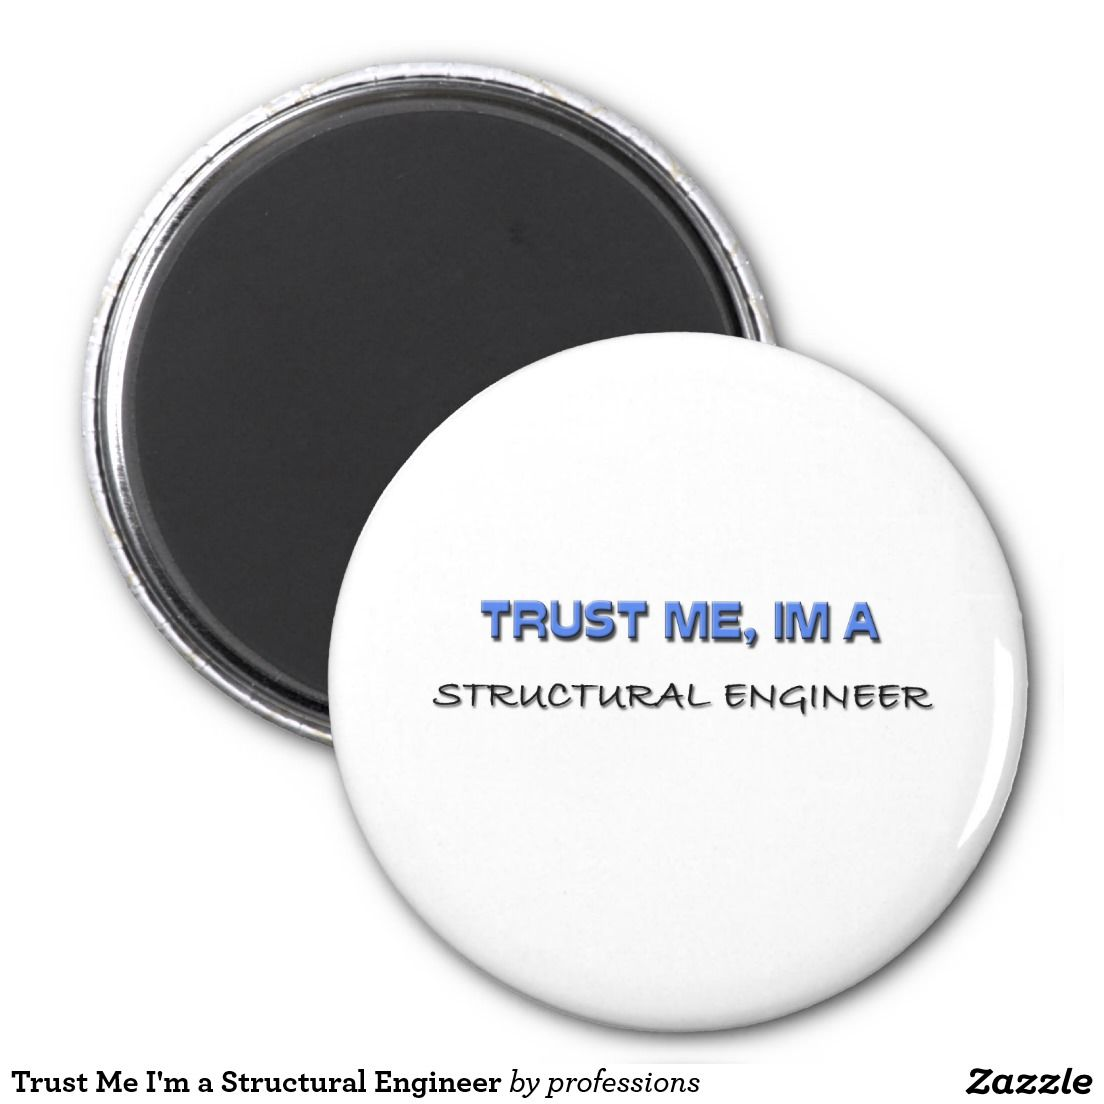 Trust Me IM A Structural Engineer Magnet  Structural Engineer